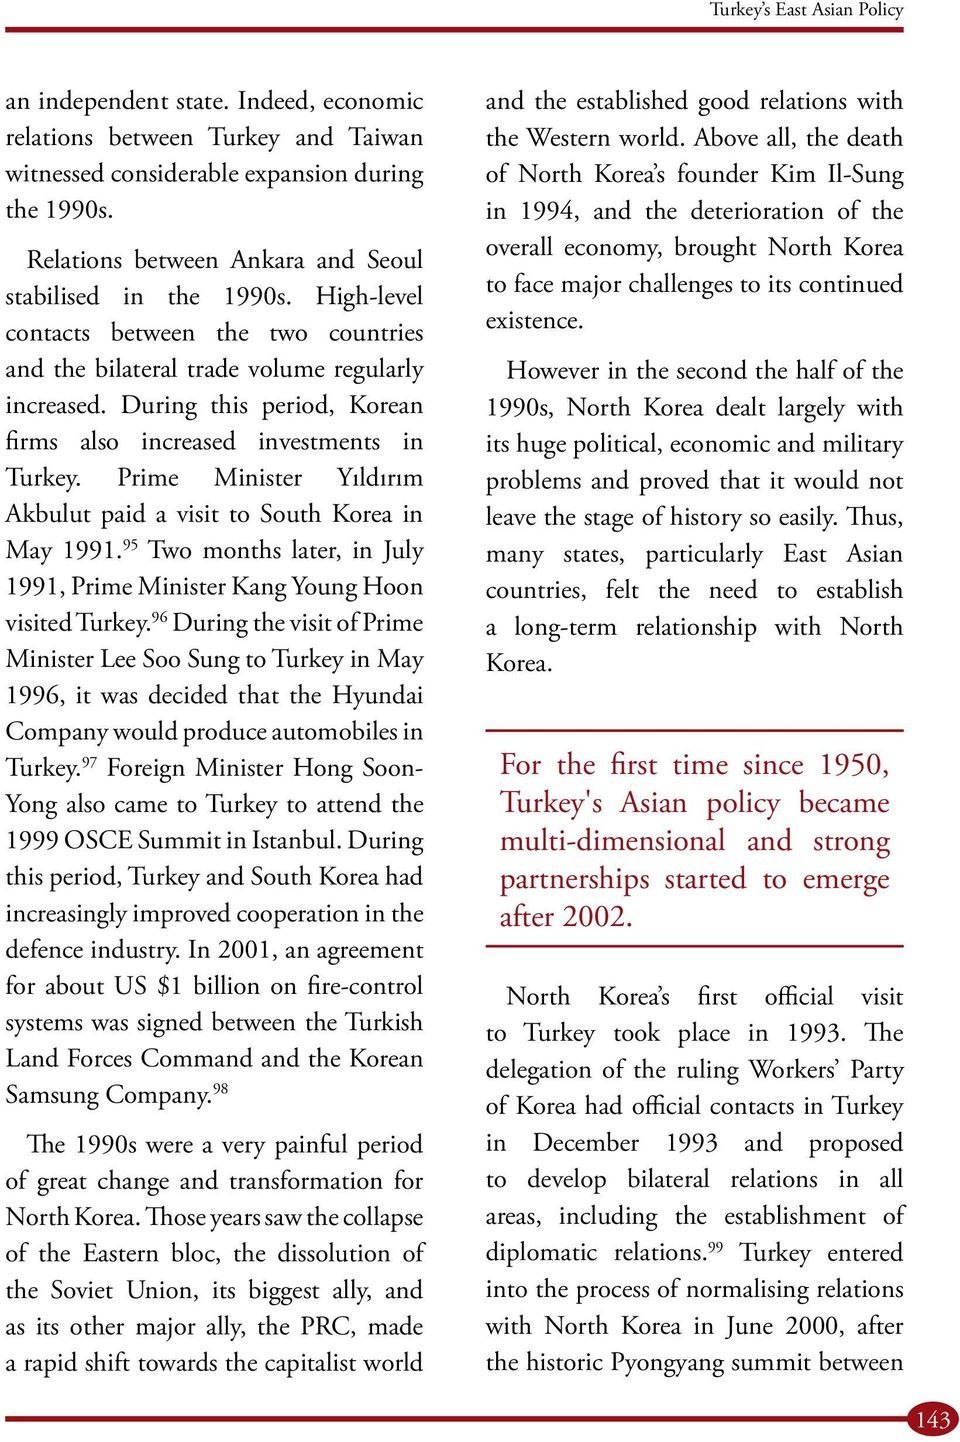 During this period, Korean firms also increased investments in Turkey. Prime Minister Yıldırım Akbulut paid a visit to South Korea in May 1991.